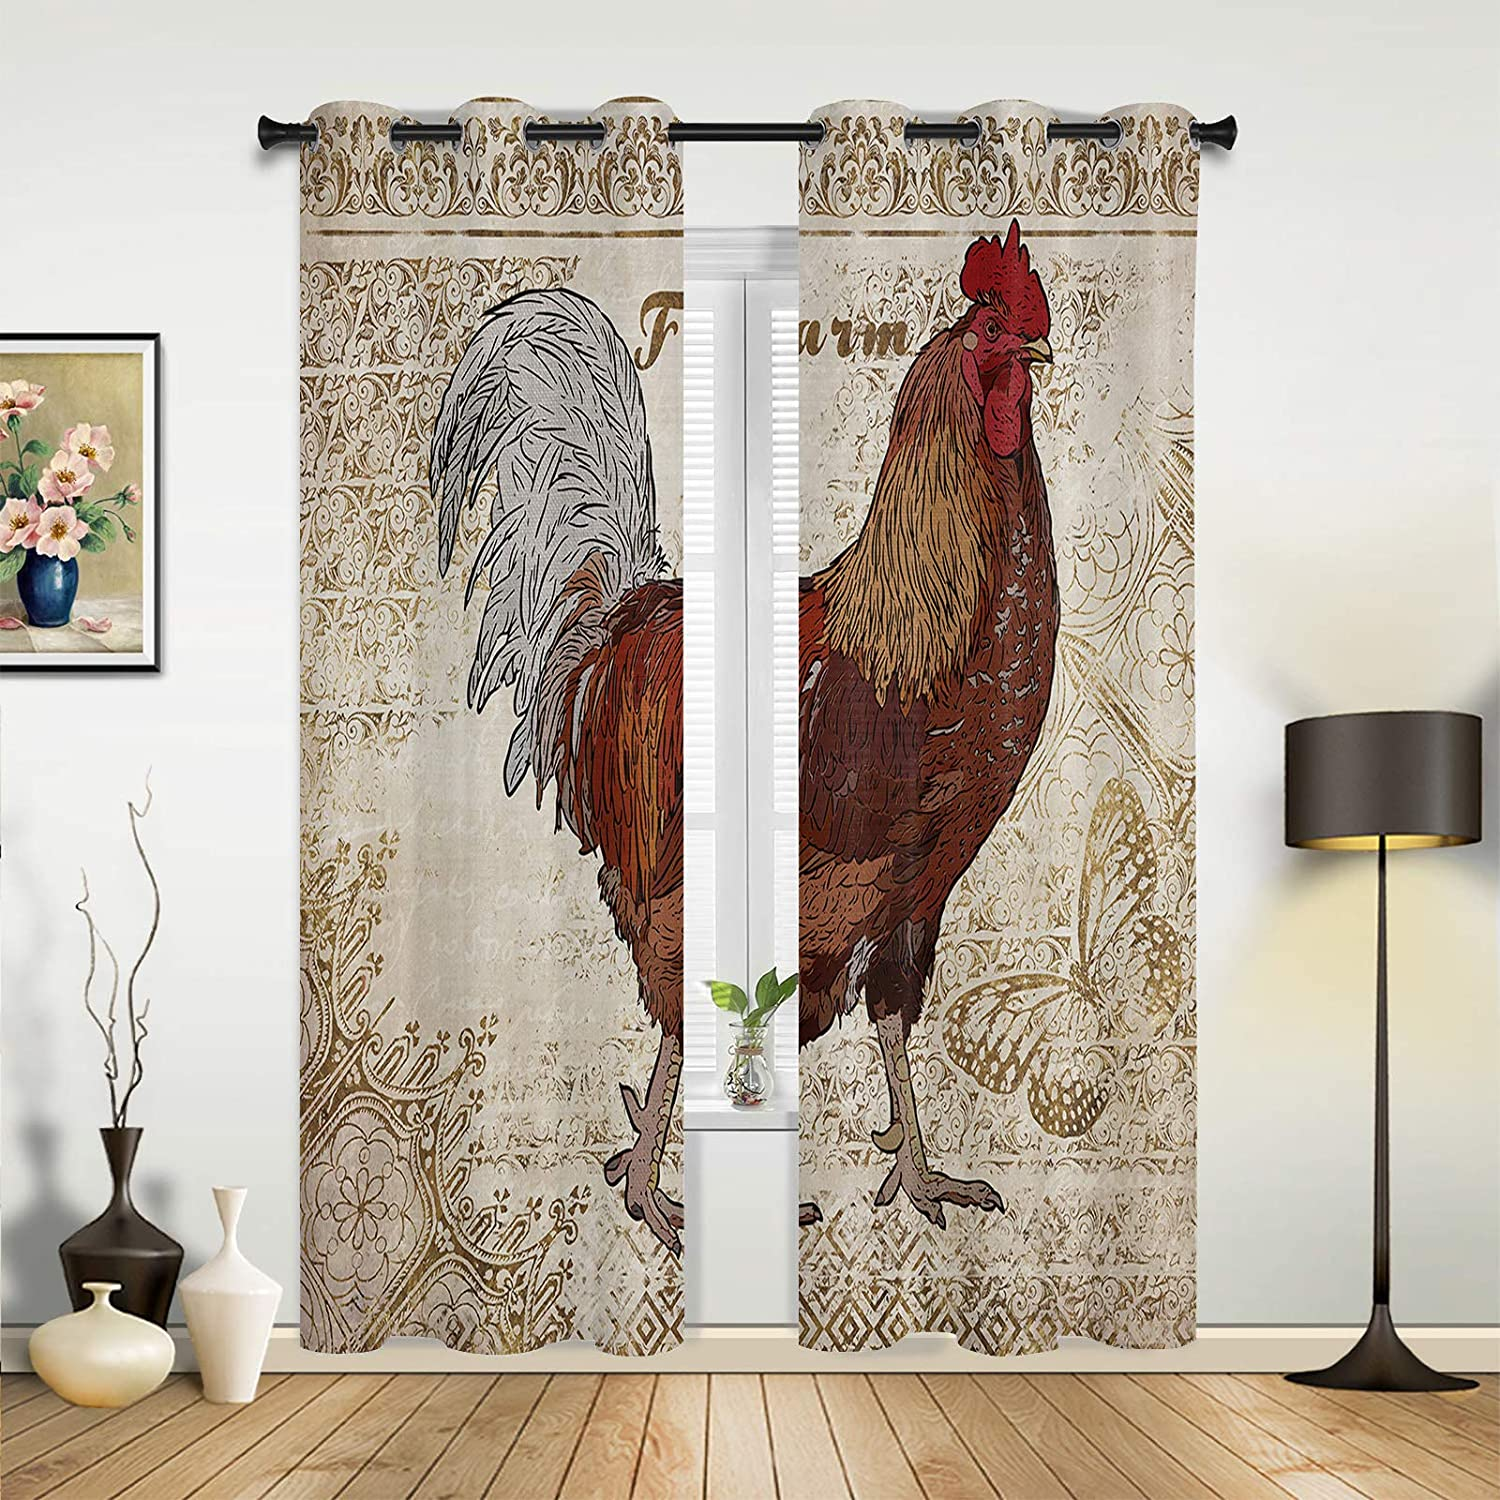 Window Sheer Curtains for New products world's Long-awaited highest quality popular Bedroom Living G Room Farm Hen Vintage